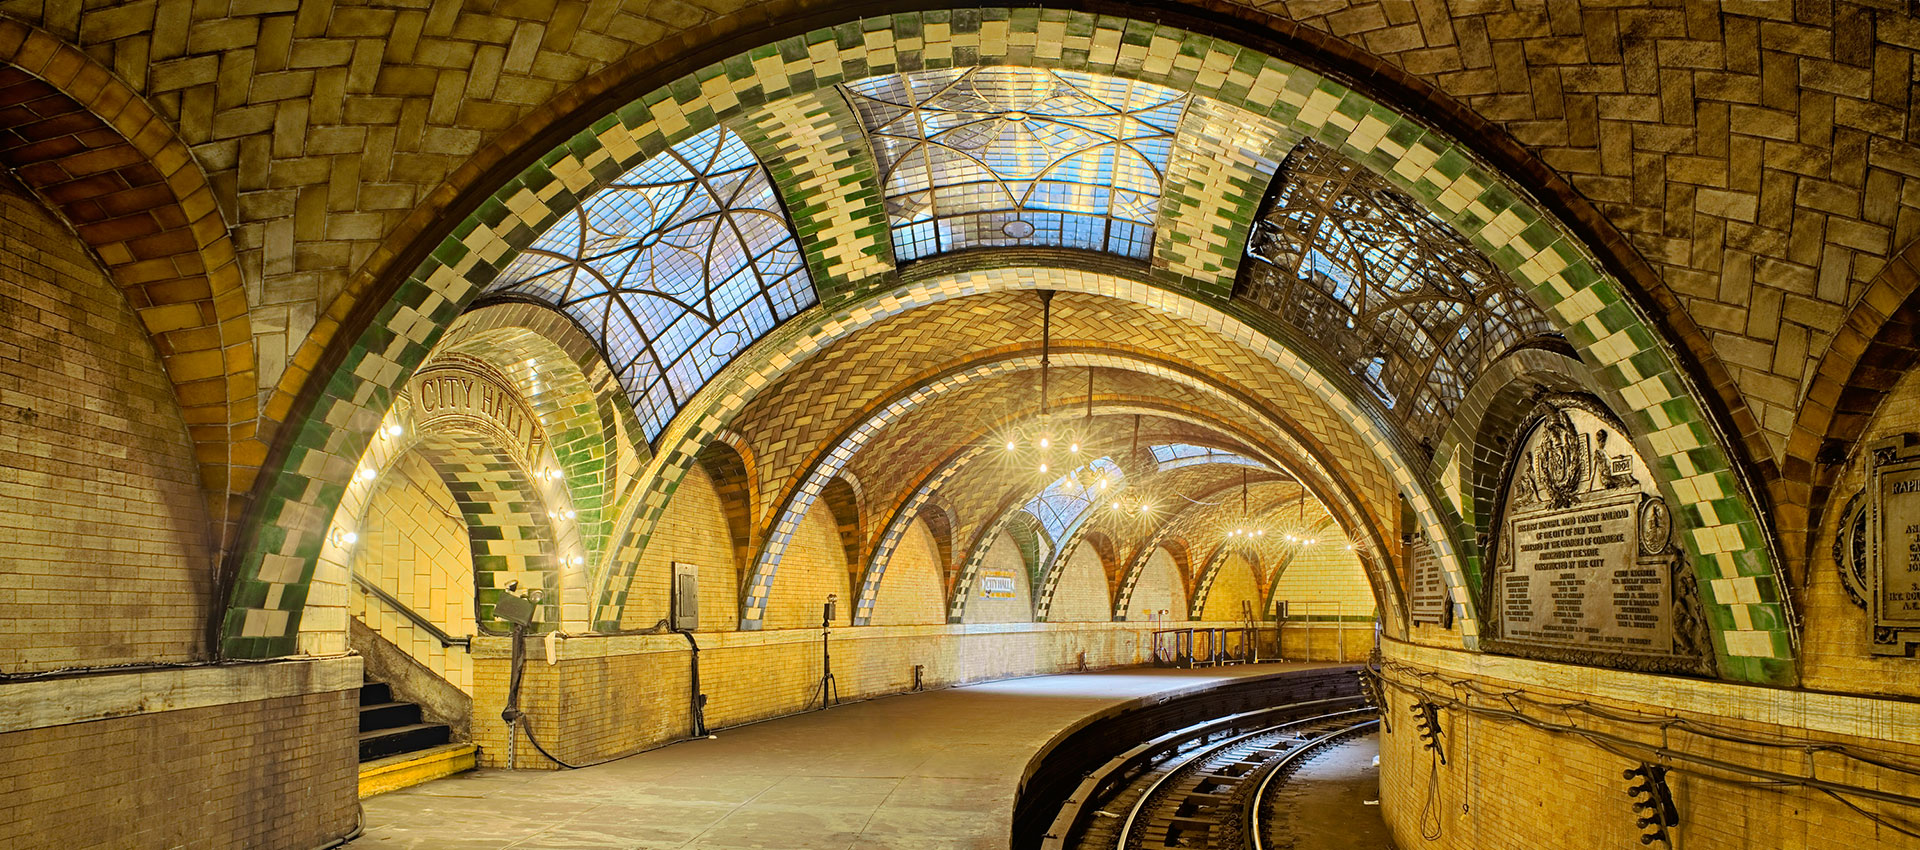 Guastavino tile vaults at City Hall Subway Station with polychrome glaze, New York City, architects Heins and LaFarge (1904). Photography © Michael Freeman